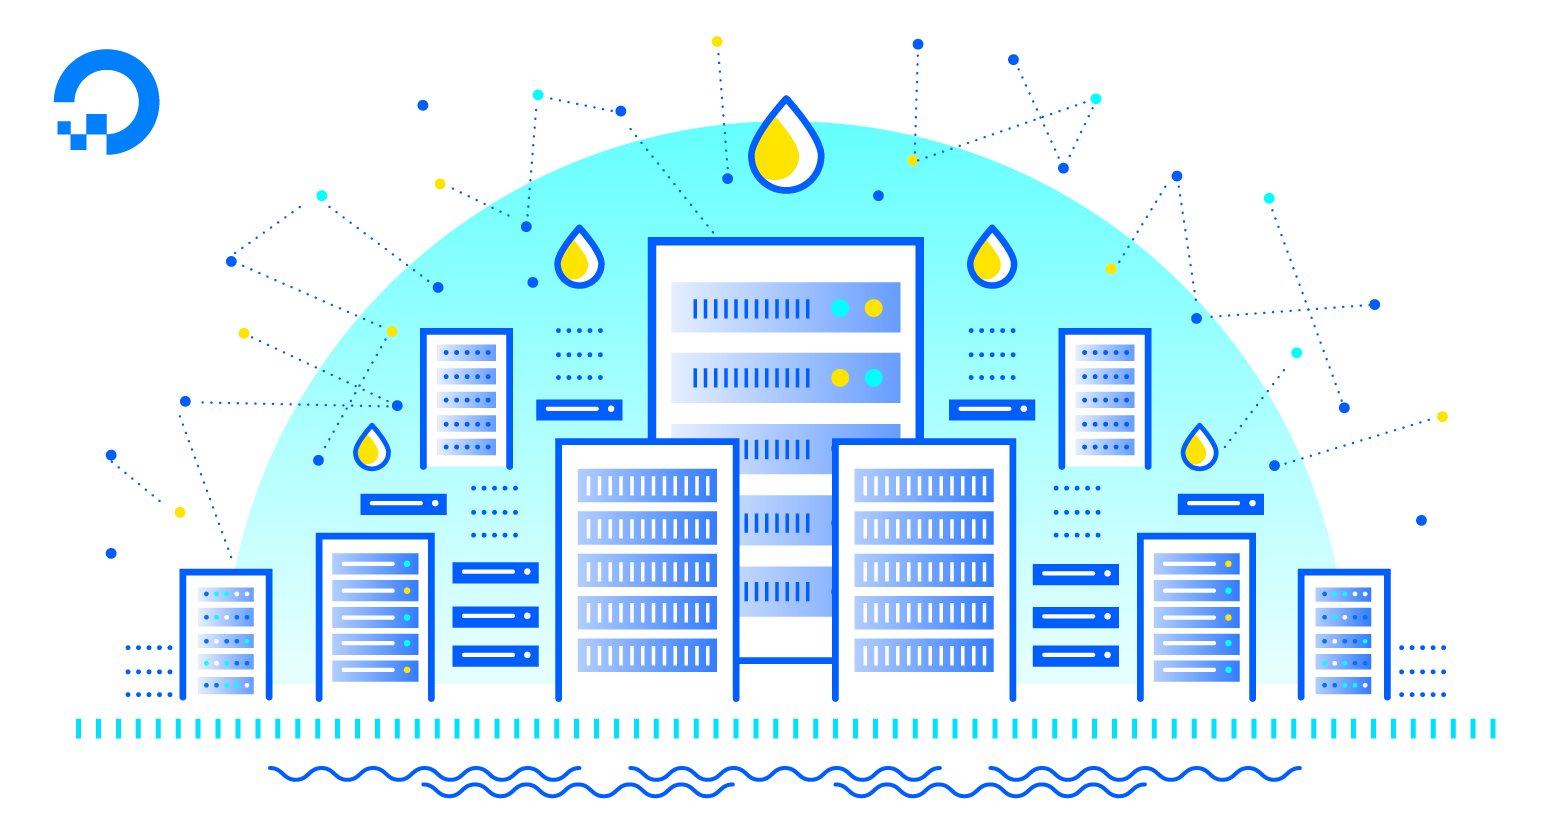 digitalocean cloud computing designed for developers today we re excited to share that block storage is available to all droplets in our bangalore region with block storage you can scale your storage